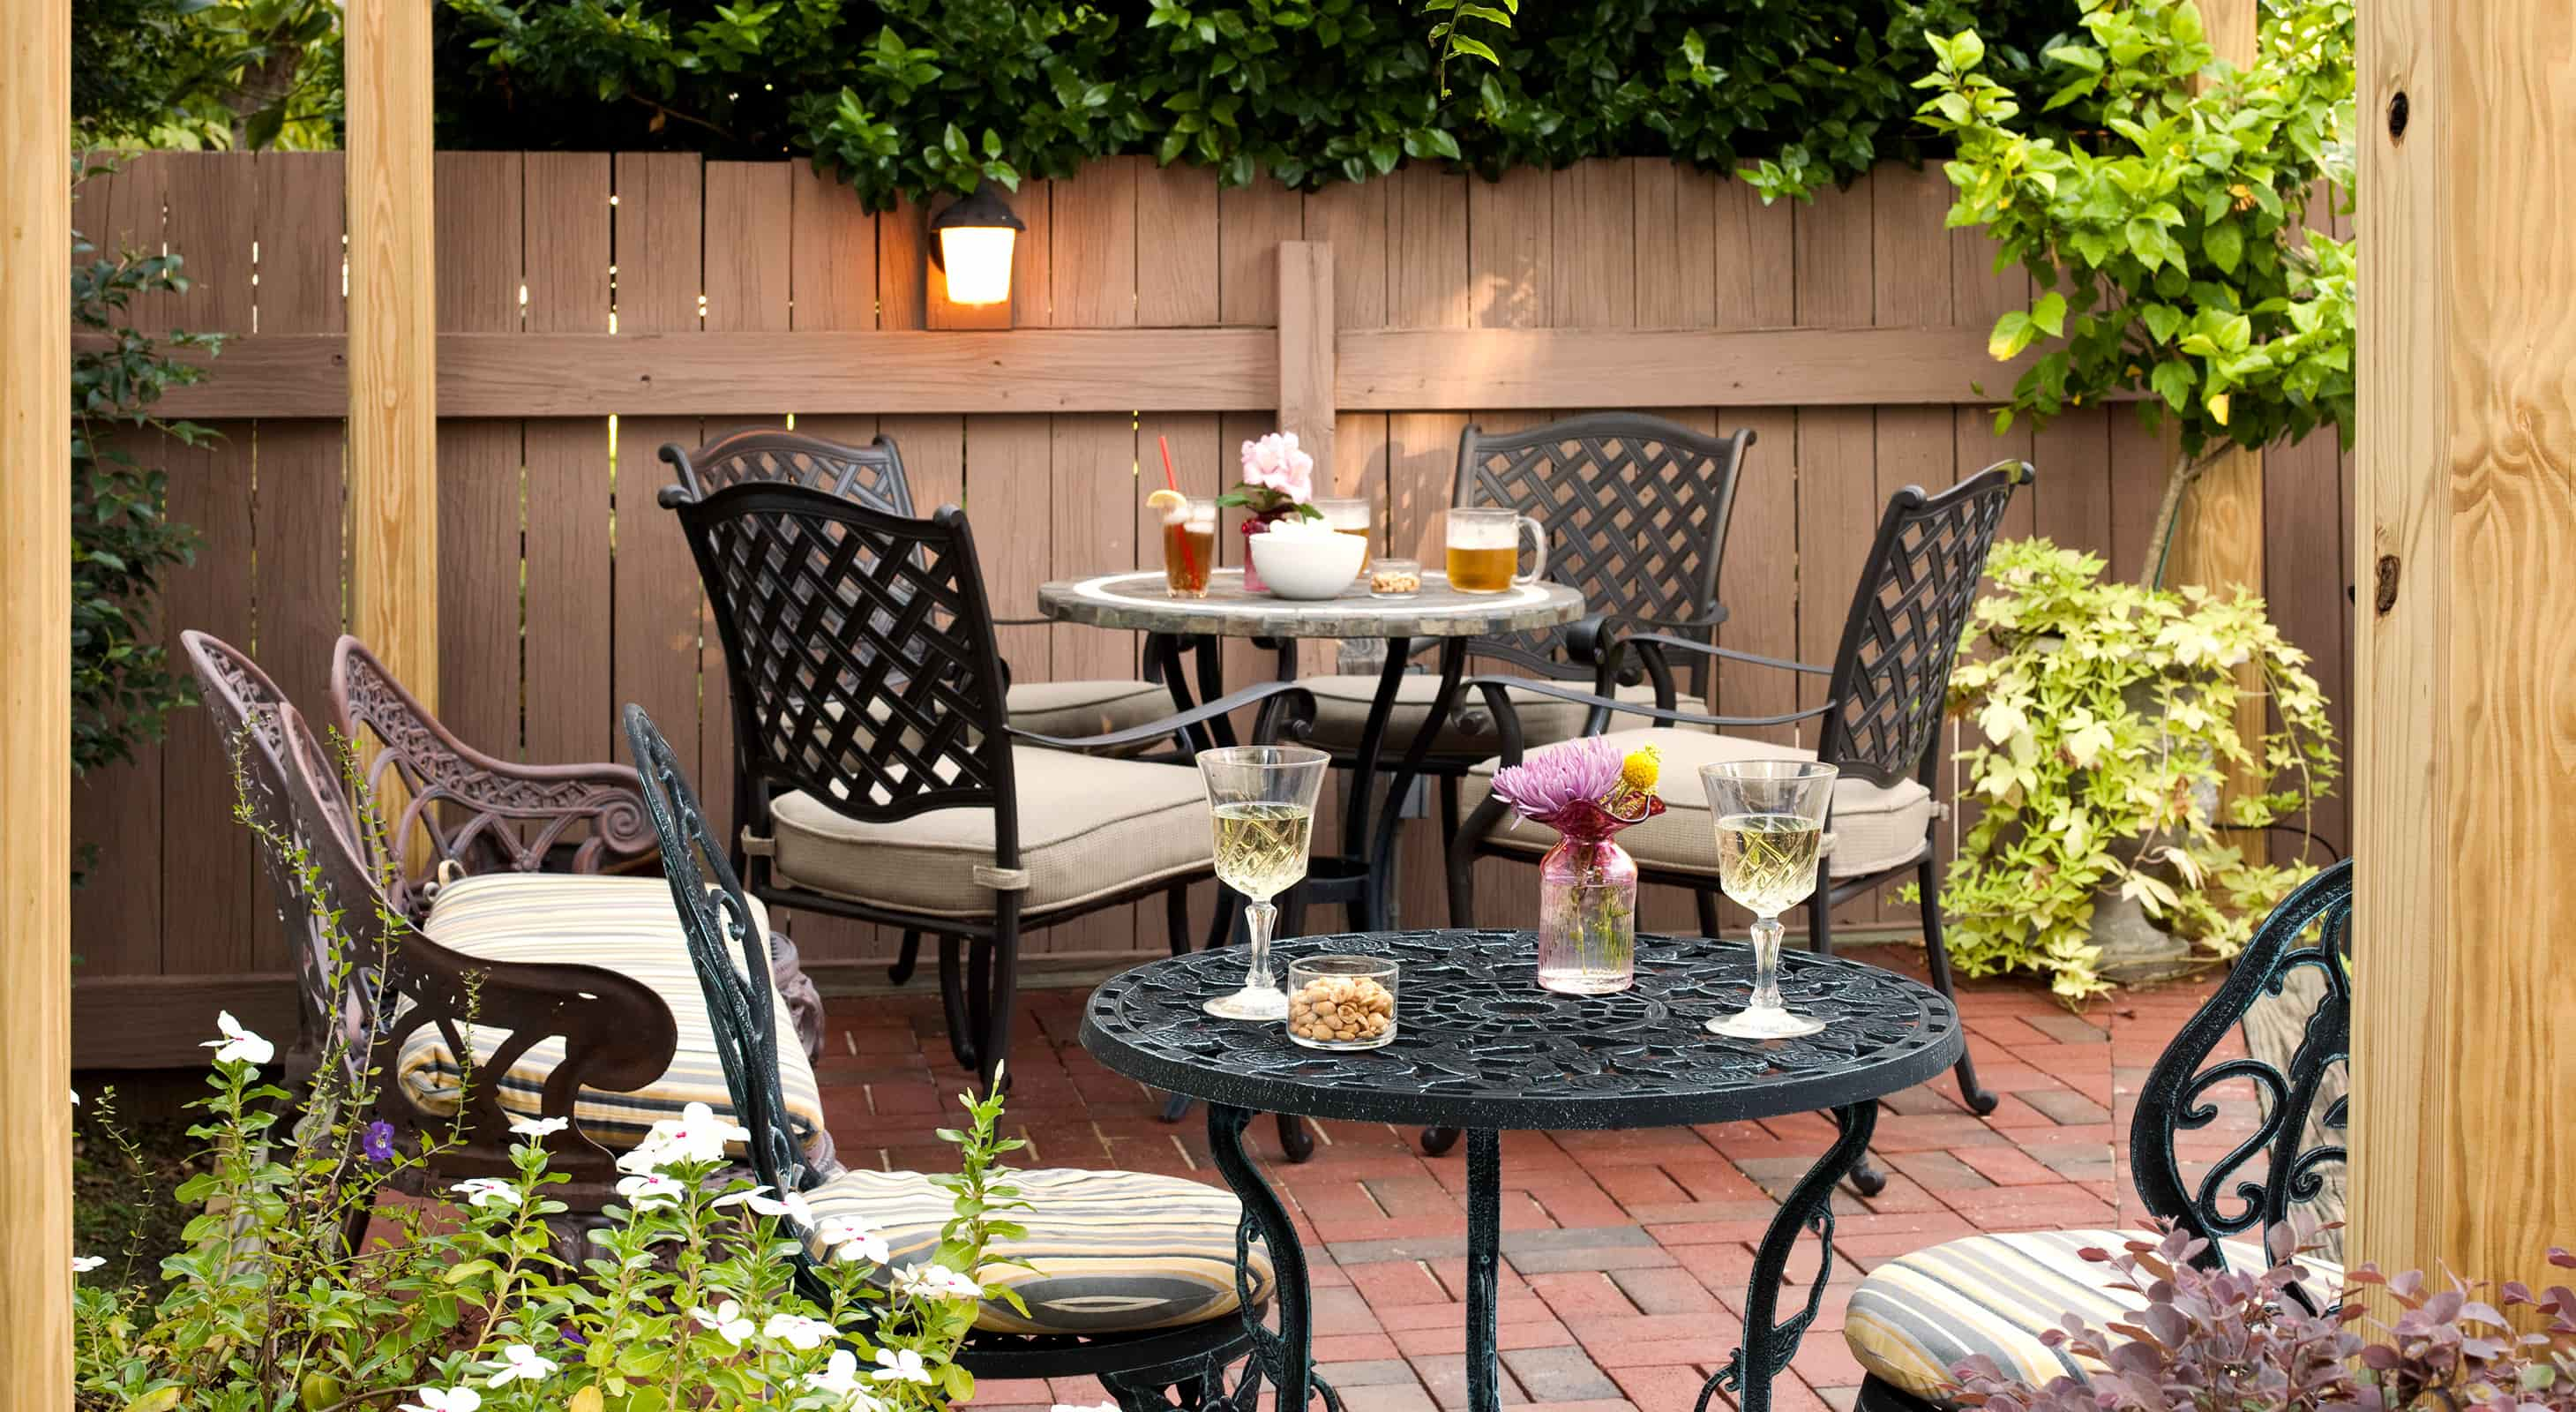 outdoor patio at our Mississippi boutique hotel